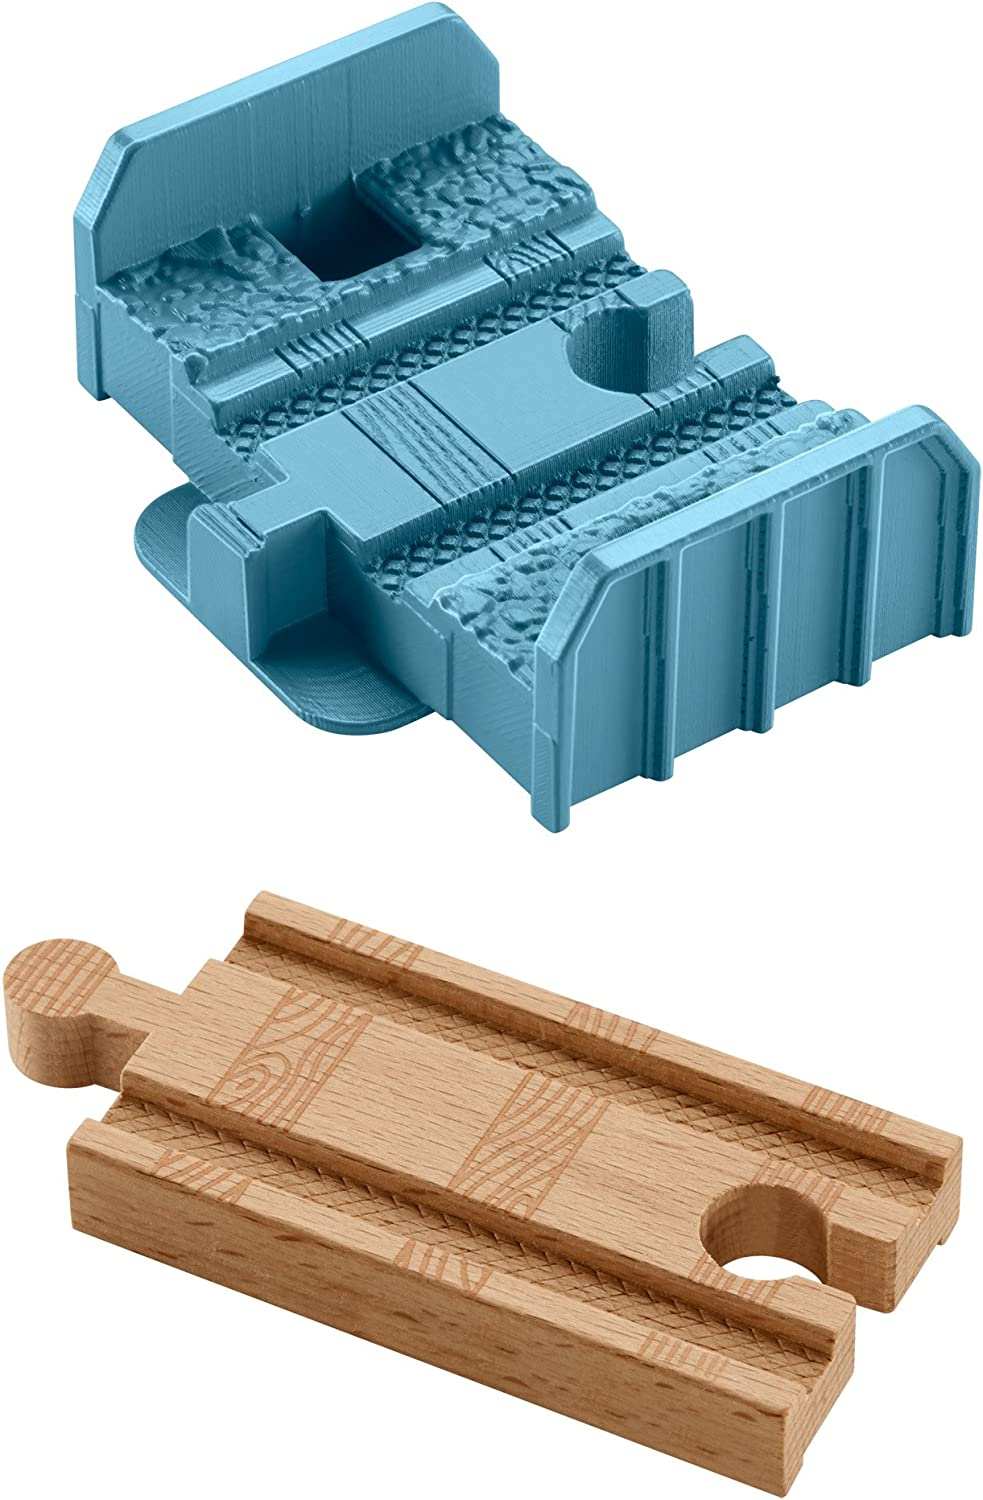 Fisher Price DFW99 Thomas and Friends Wooden Railway Build-it-Higher Track Riser Set